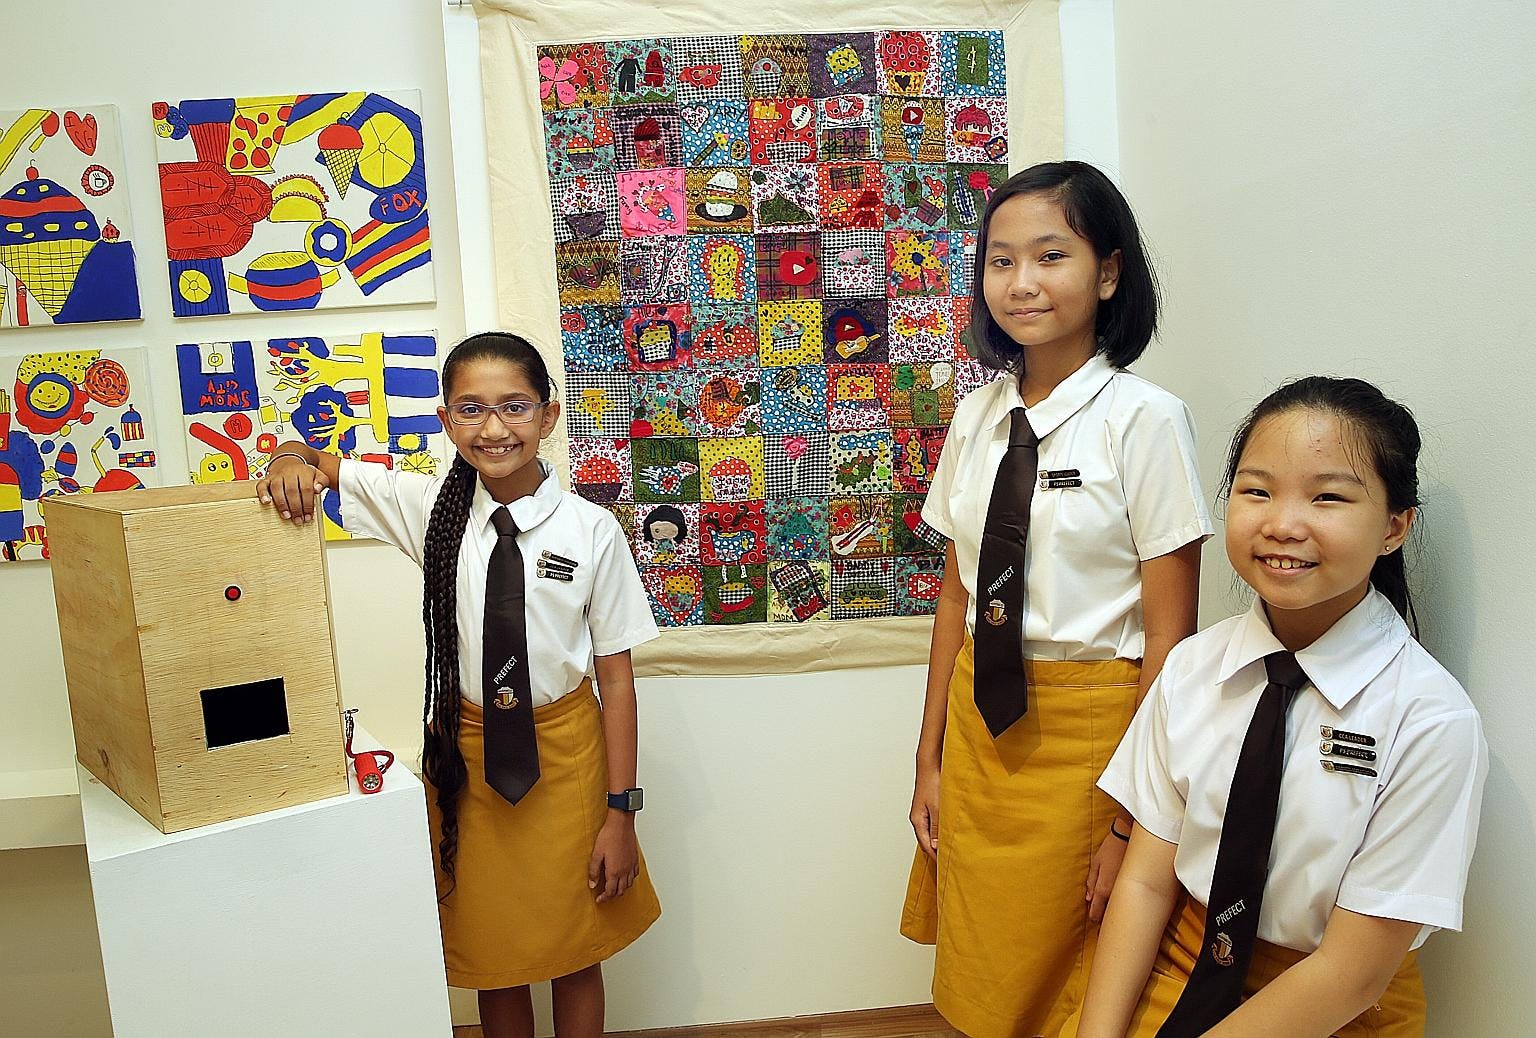 Students at Haig Girls' School posing beside a school project